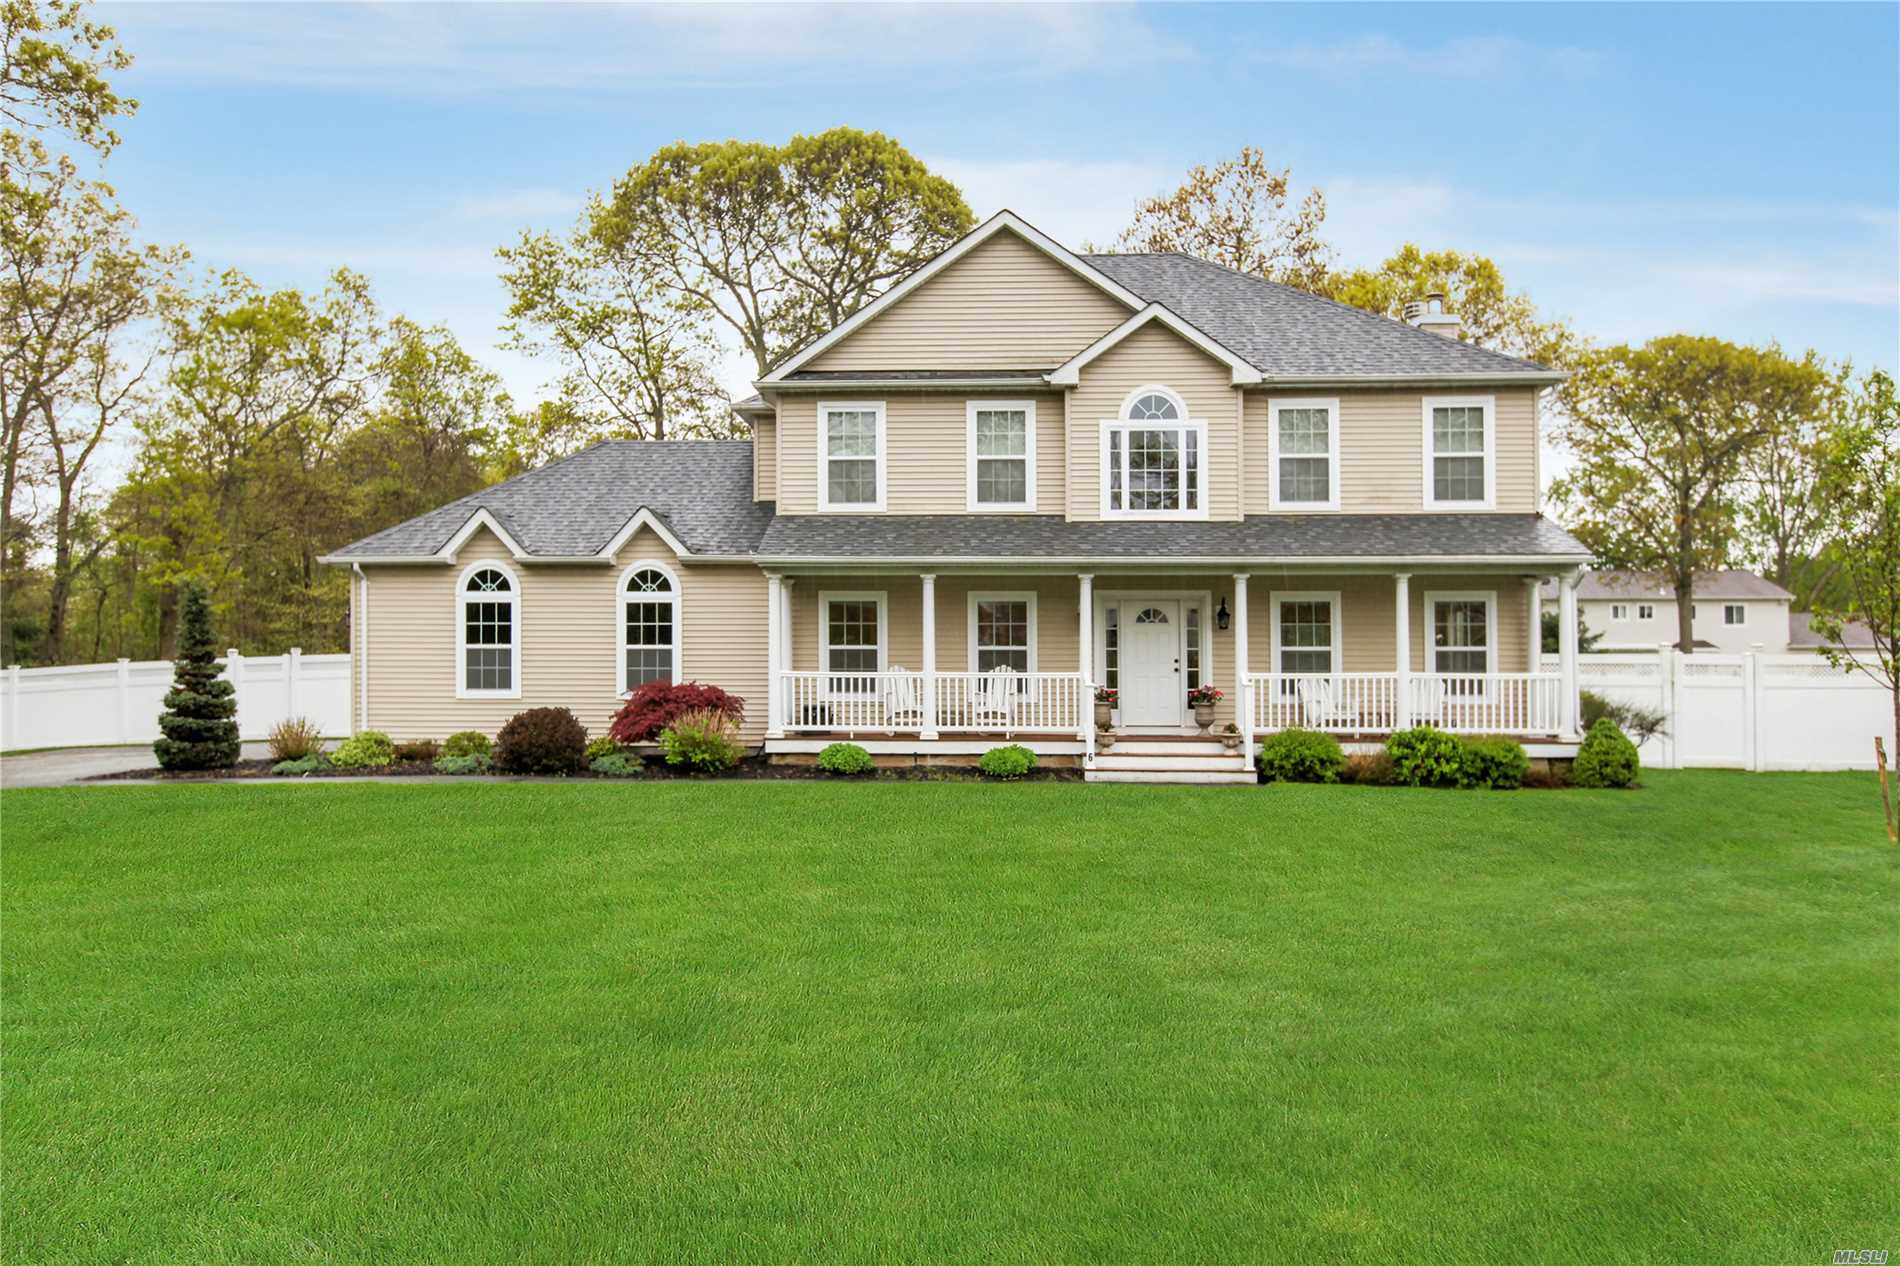 Newer Colonial with many quality upgrades. Gourmet Granite Kitchen with Center Island, Hardwood Flooring,  Fireplace, Crown Moldings, Arched entry to Family room, Stainless Appliances, Finished Basement, Private PVC Fenced, Private shy acre property Located on a Cul-De-Sac. Room for Mom!